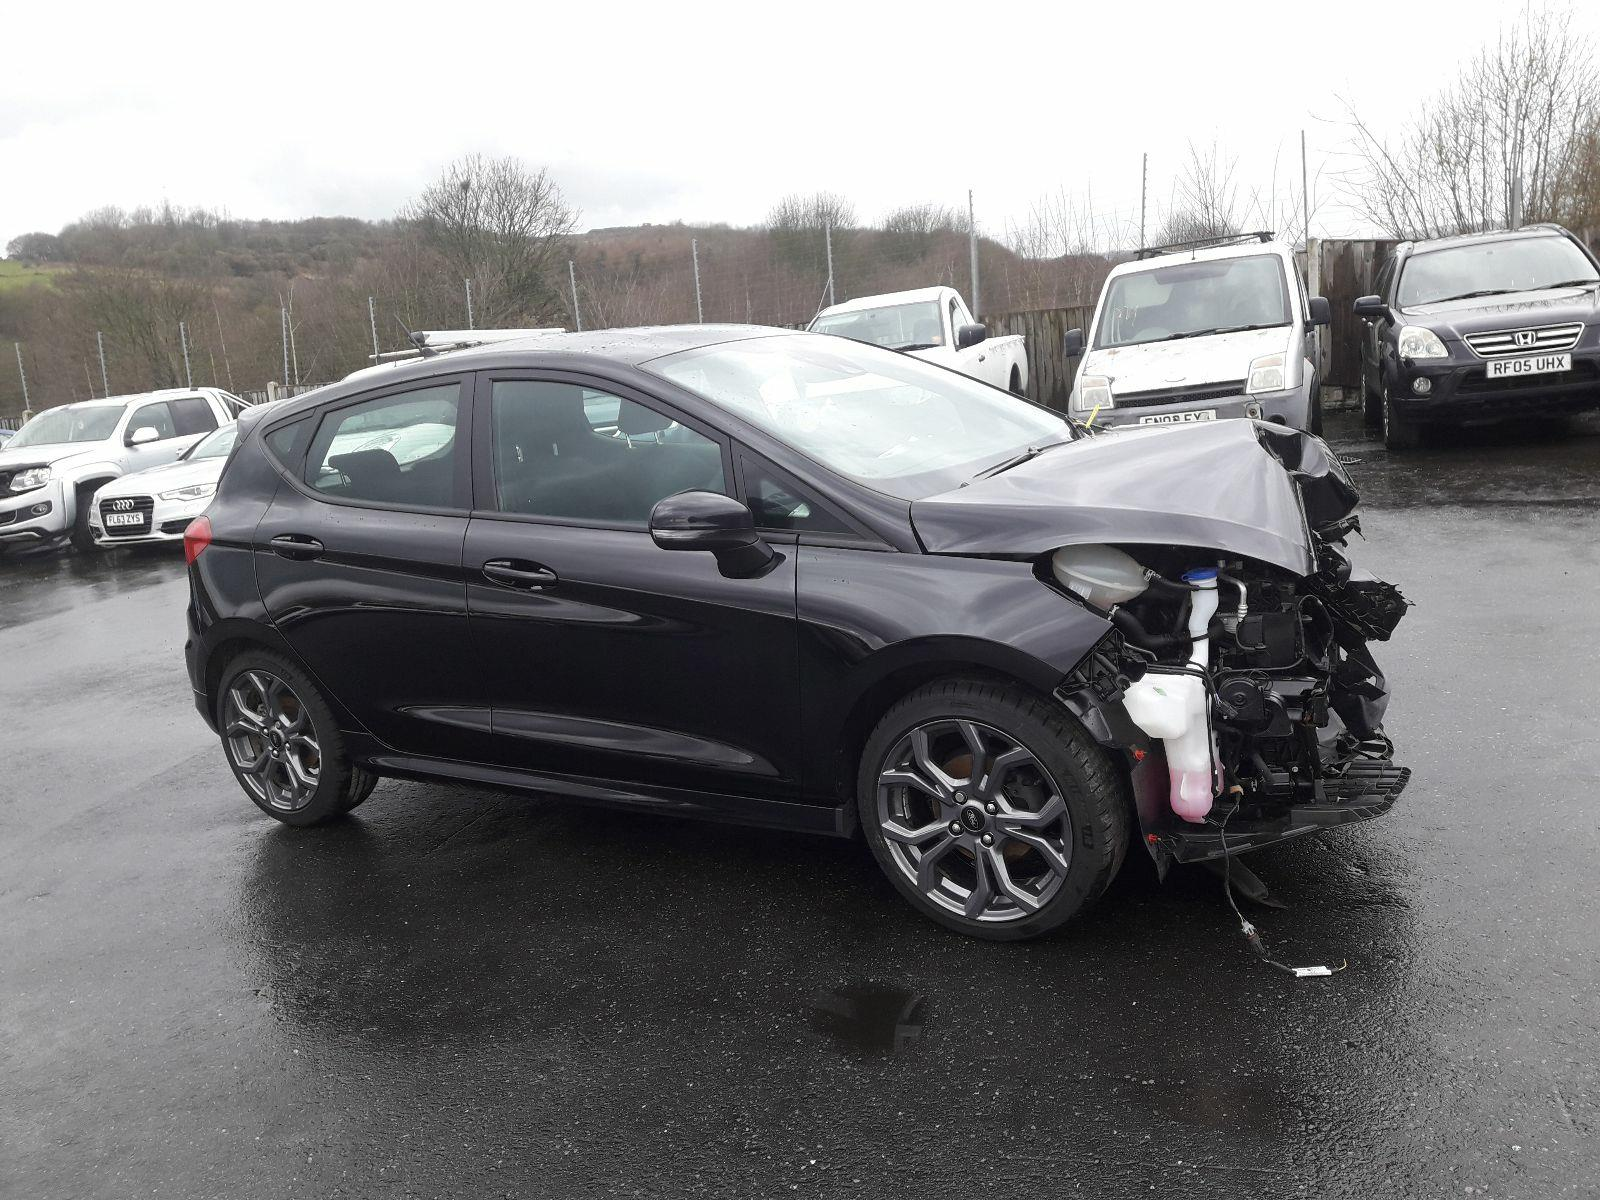 Synetiq 2019 Ford Fiesta Mk8 B479 2017 On St Line 5 Door Hatchback Petrol Manual Breaking For Used And Spare Parts